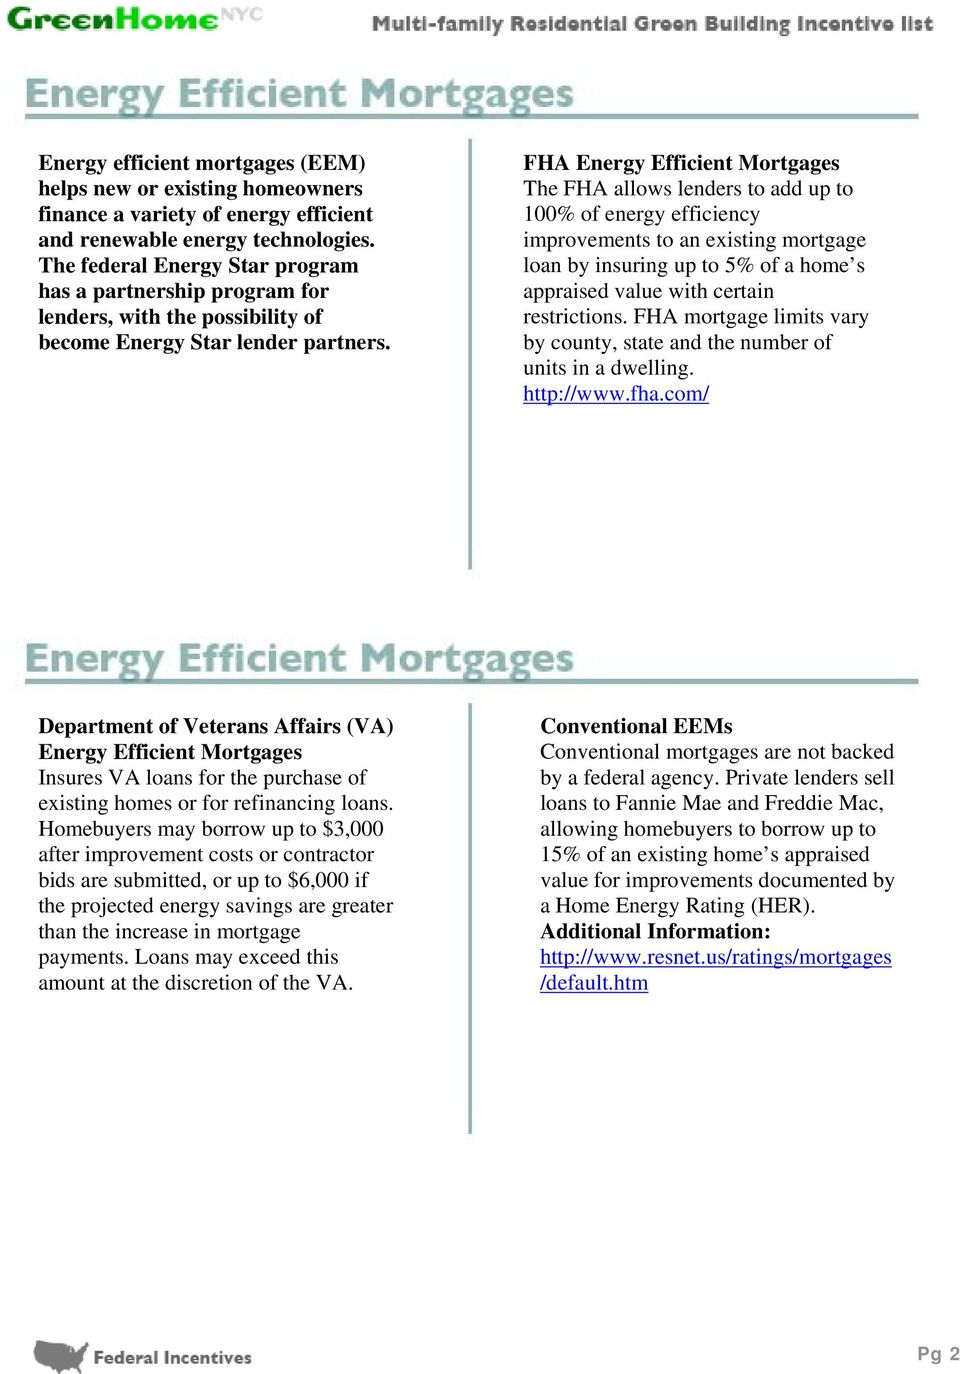 FHA Energy Efficient Mortgages The FHA allows lenders to add up to 100% of energy efficiency improvements to an existing mortgage loan by insuring up to 5% of a home s appraised value with certain